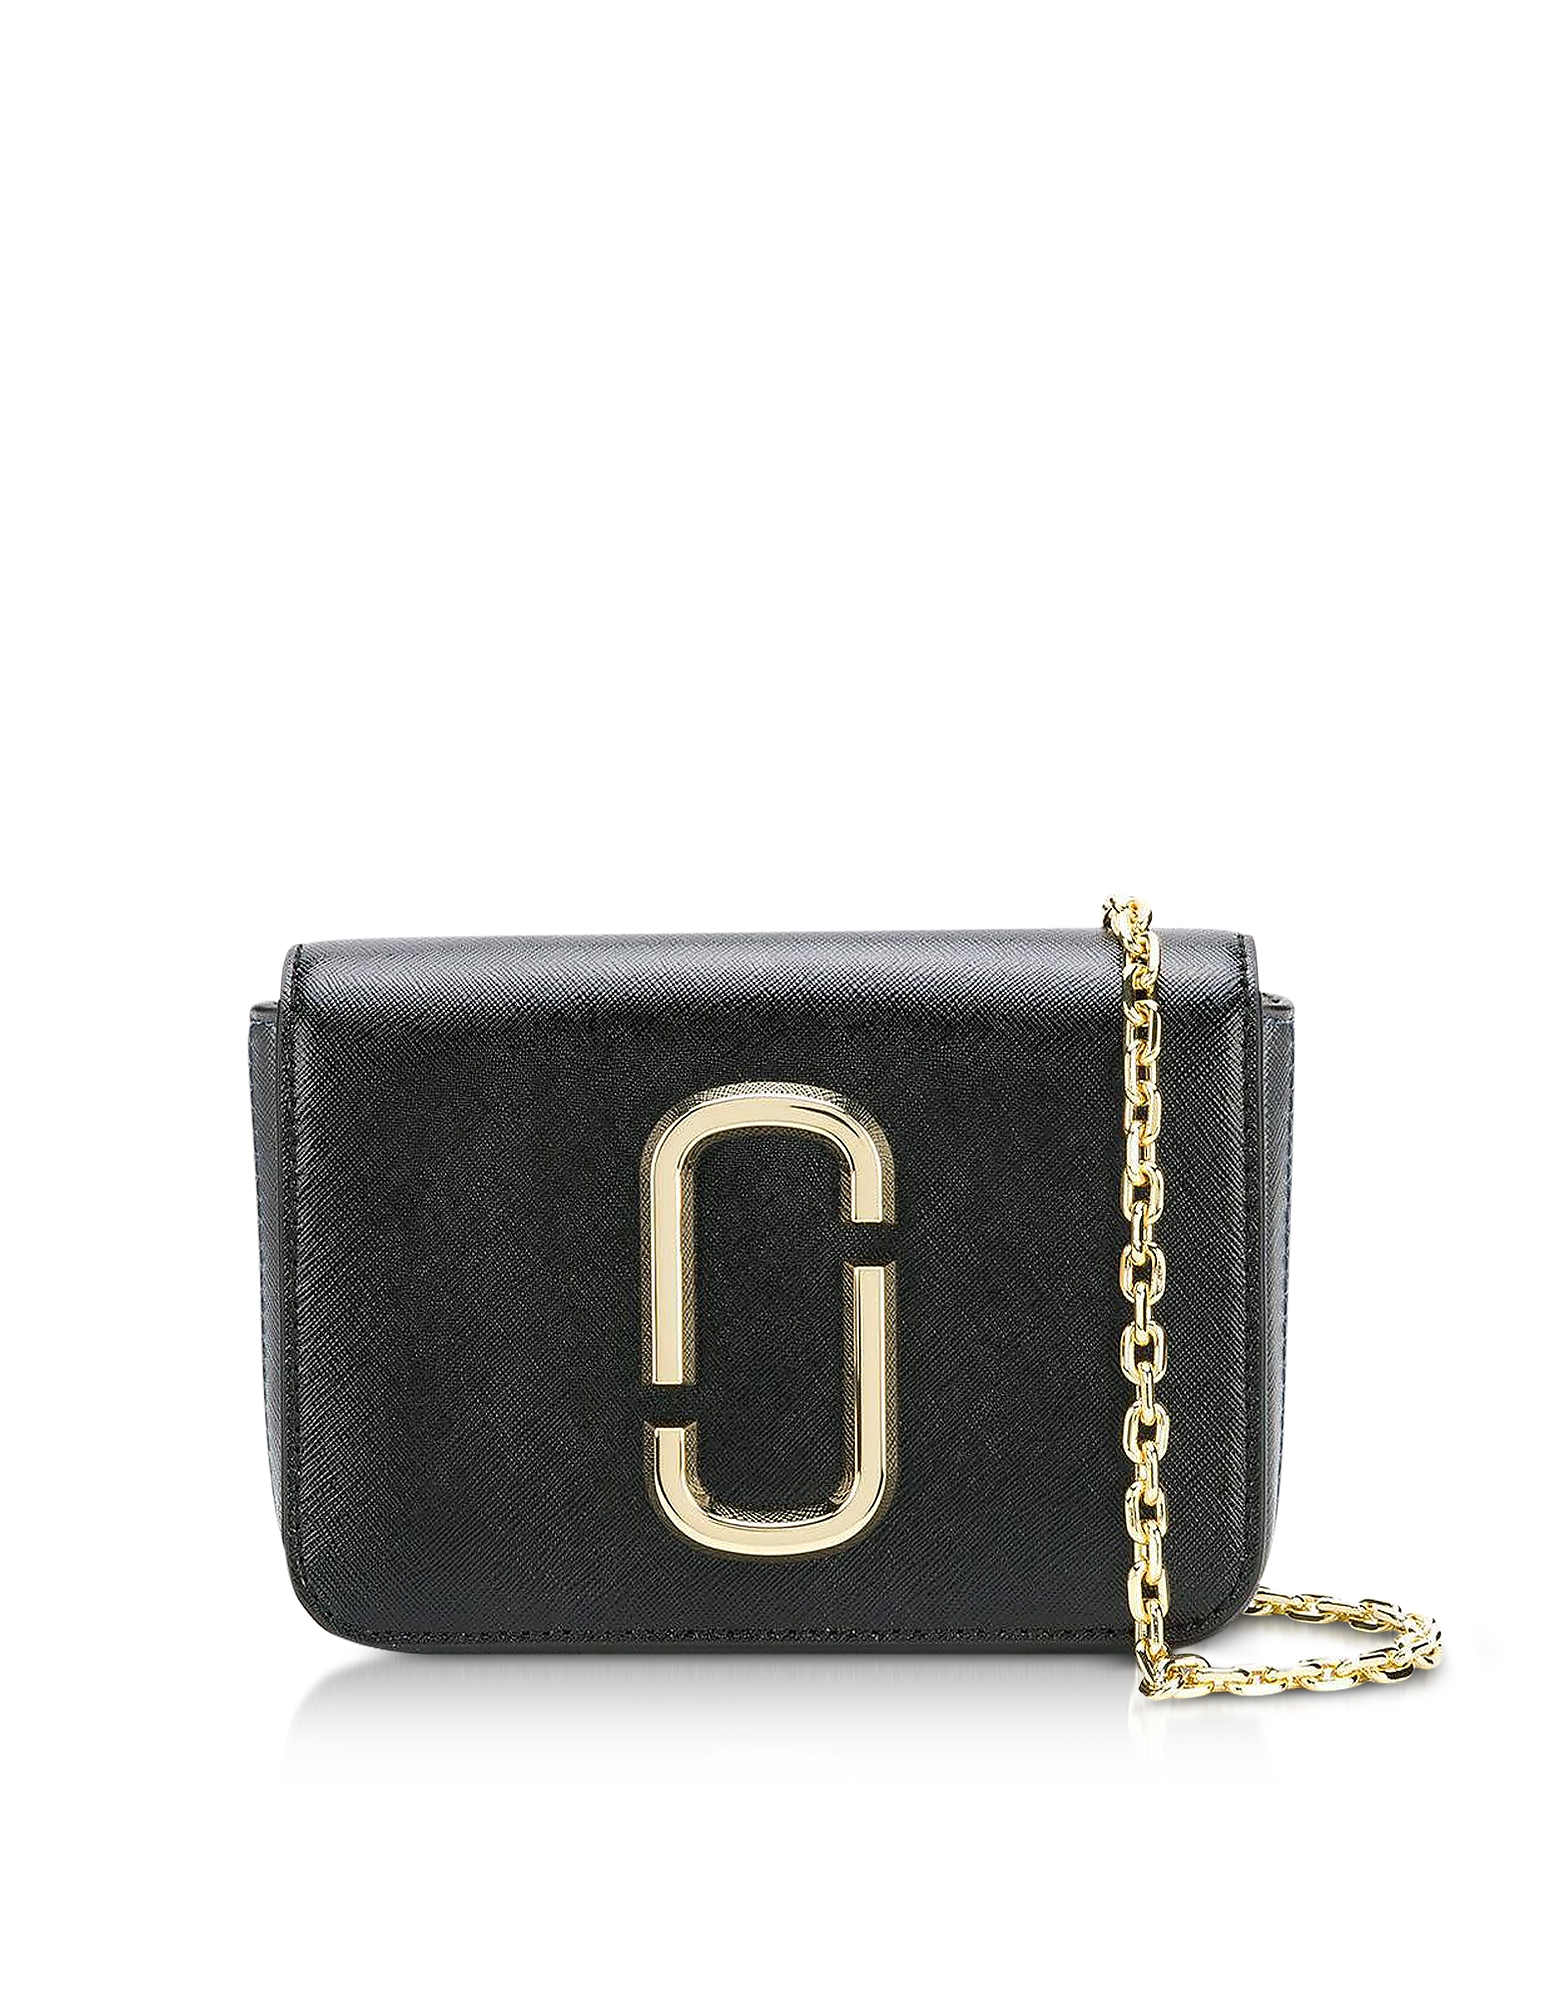 The Logo Strap Hip Shot Black Multi Saffiano Leather Belt bag